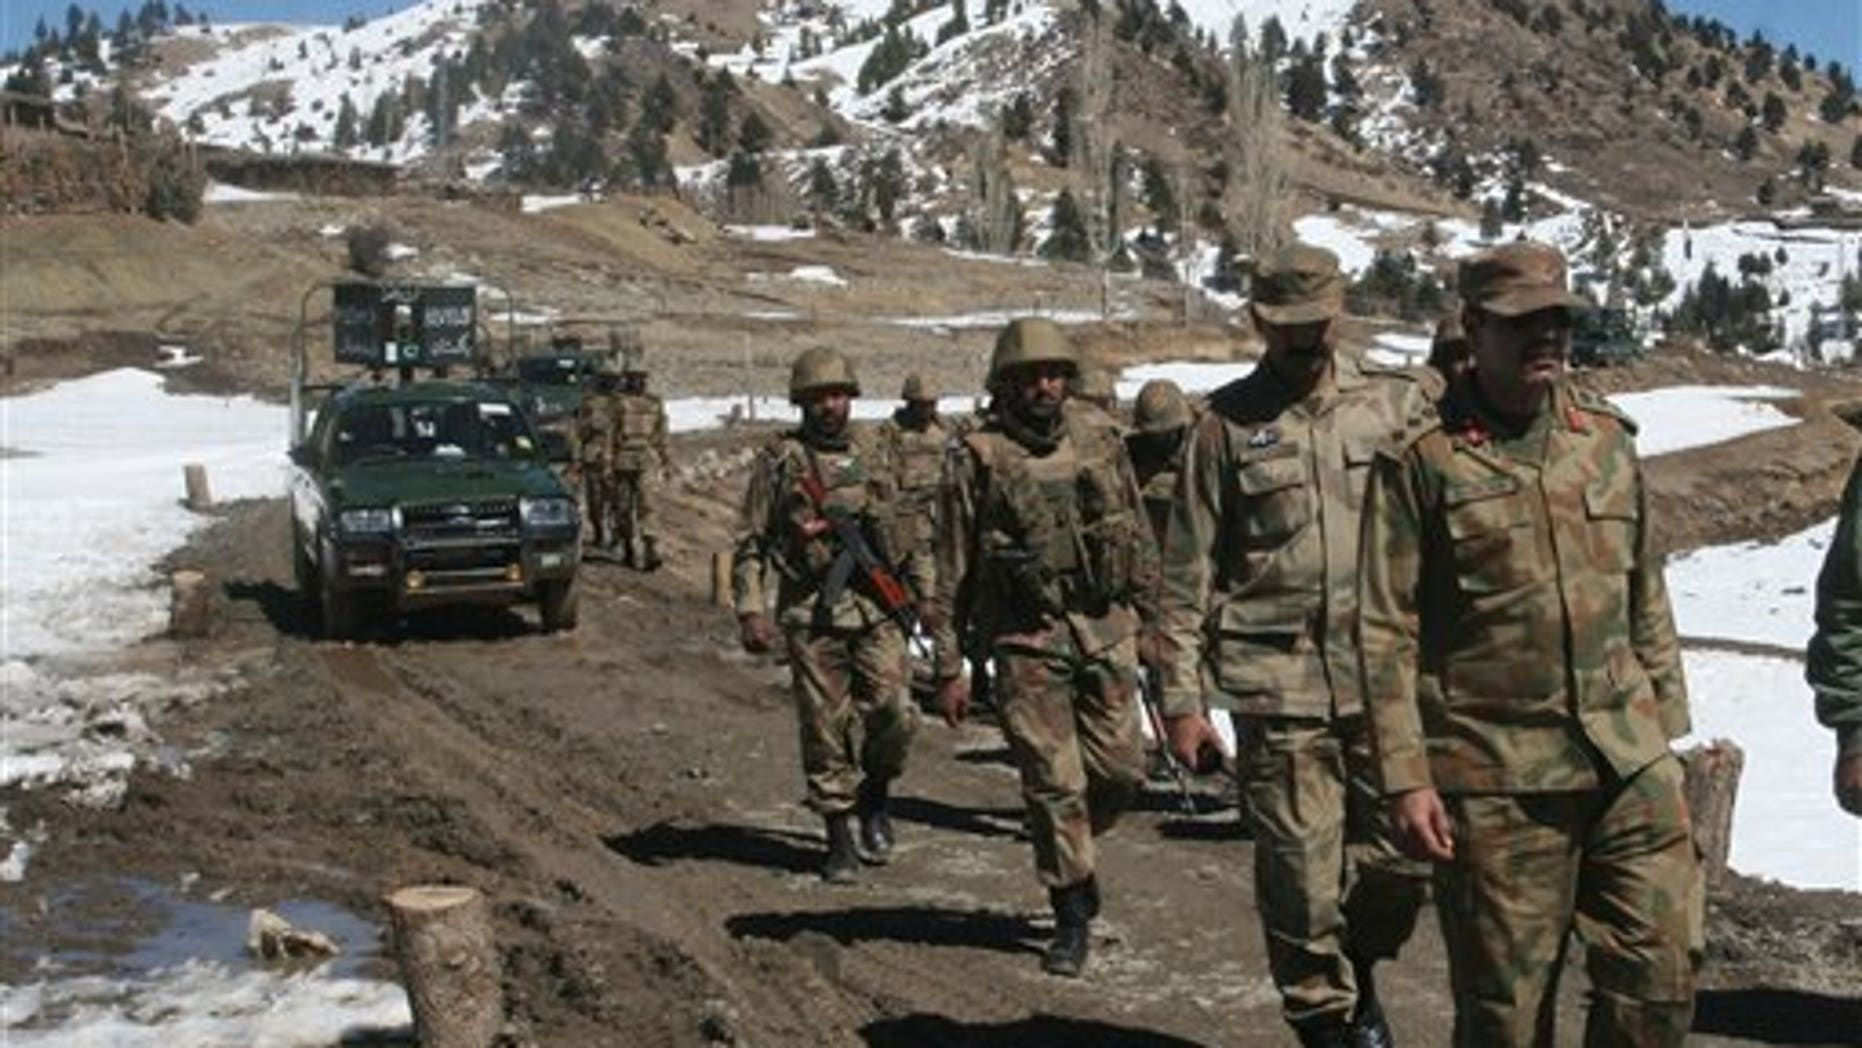 March 2011: Pakistan army soldiers patrol in the Pakistani tribal area of Ditta Kheil in North Waziristan where the Pakistan army are fighting against militants and al-Qaida activists along the Afghanistan border.